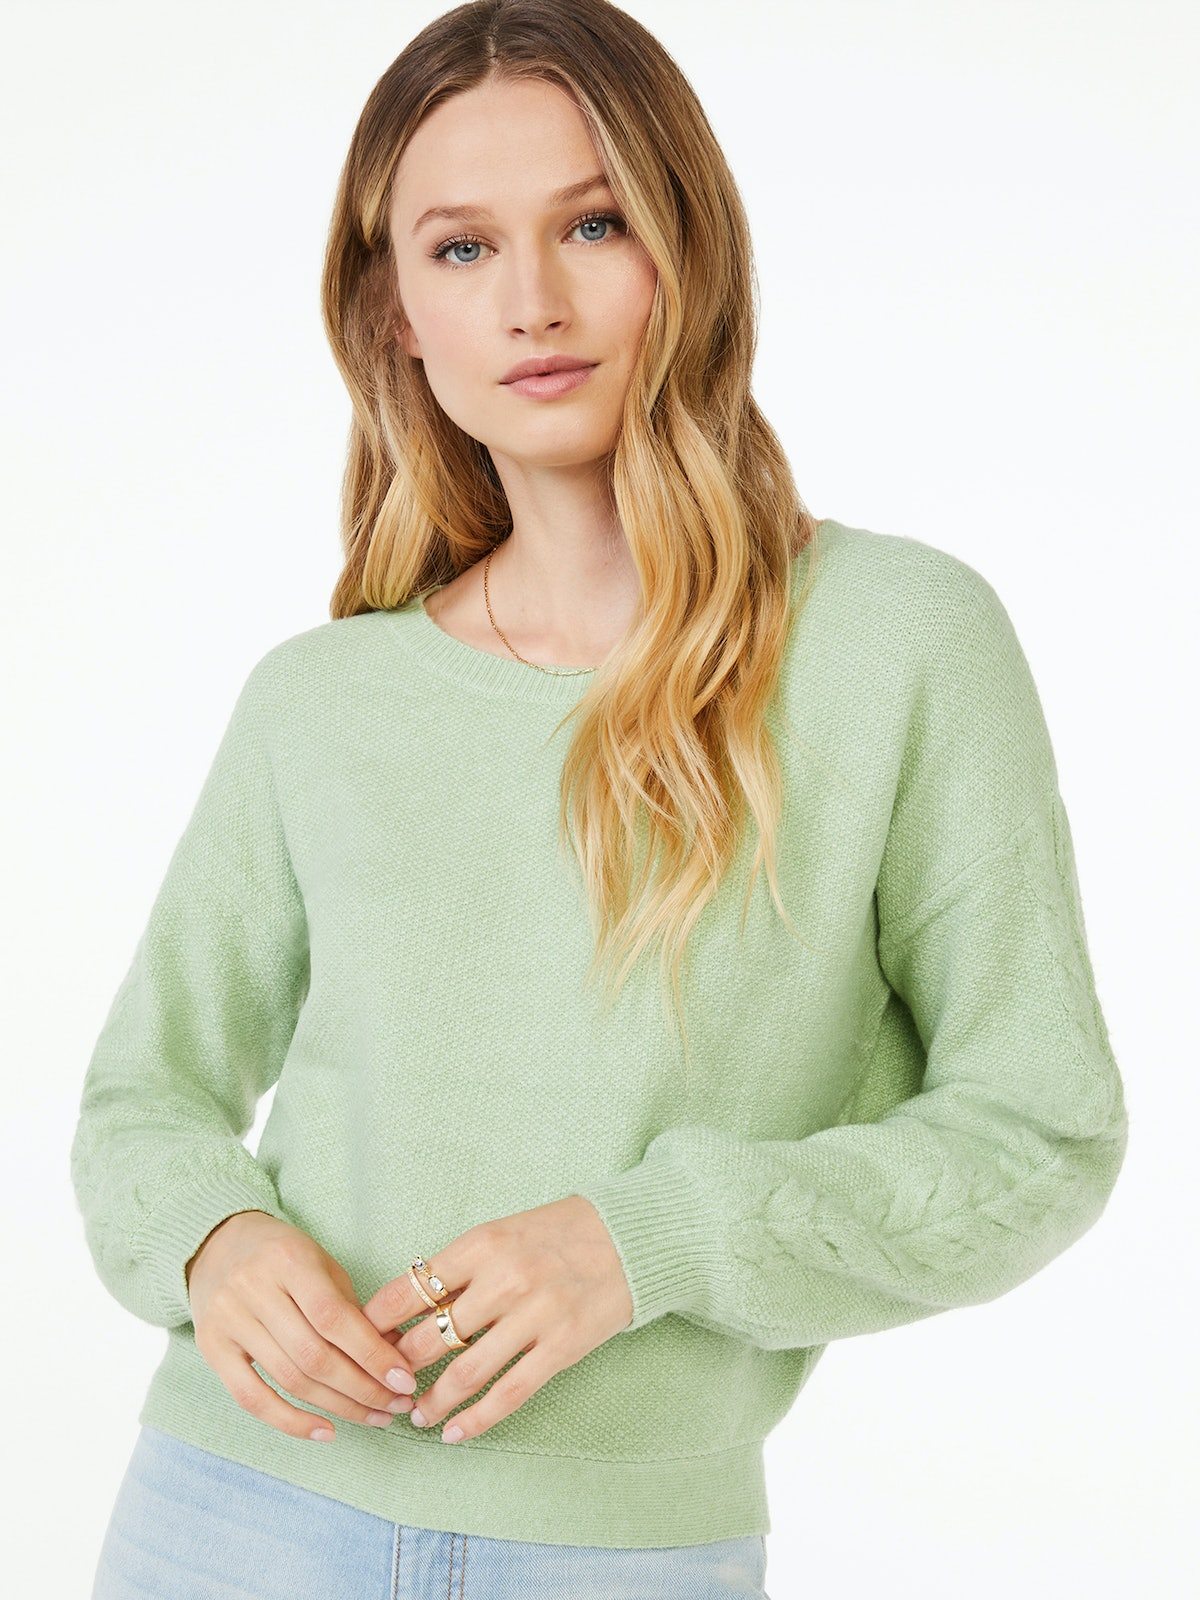 Puff Sleeve Sweater with Cross Back Tie